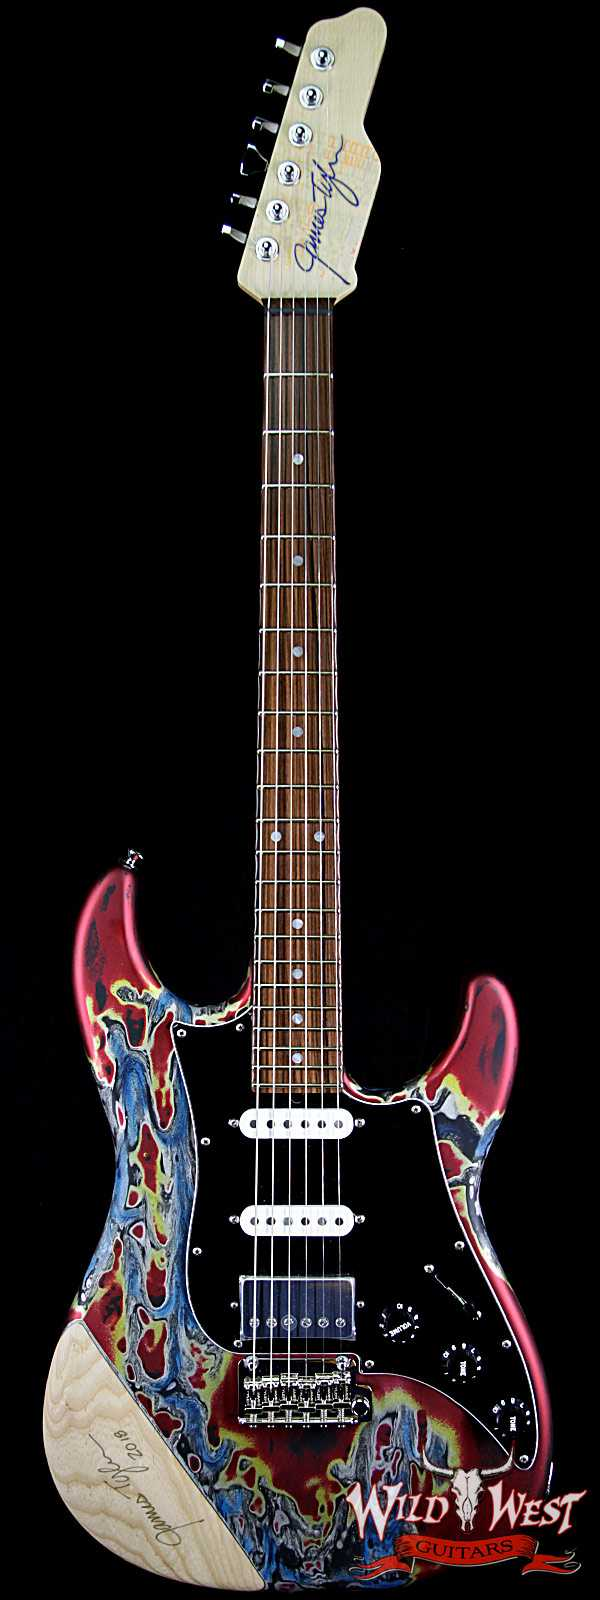 James Tyler USA Studio Elite 25th Anniversary Limited Edition Burning Water # 58 of 75